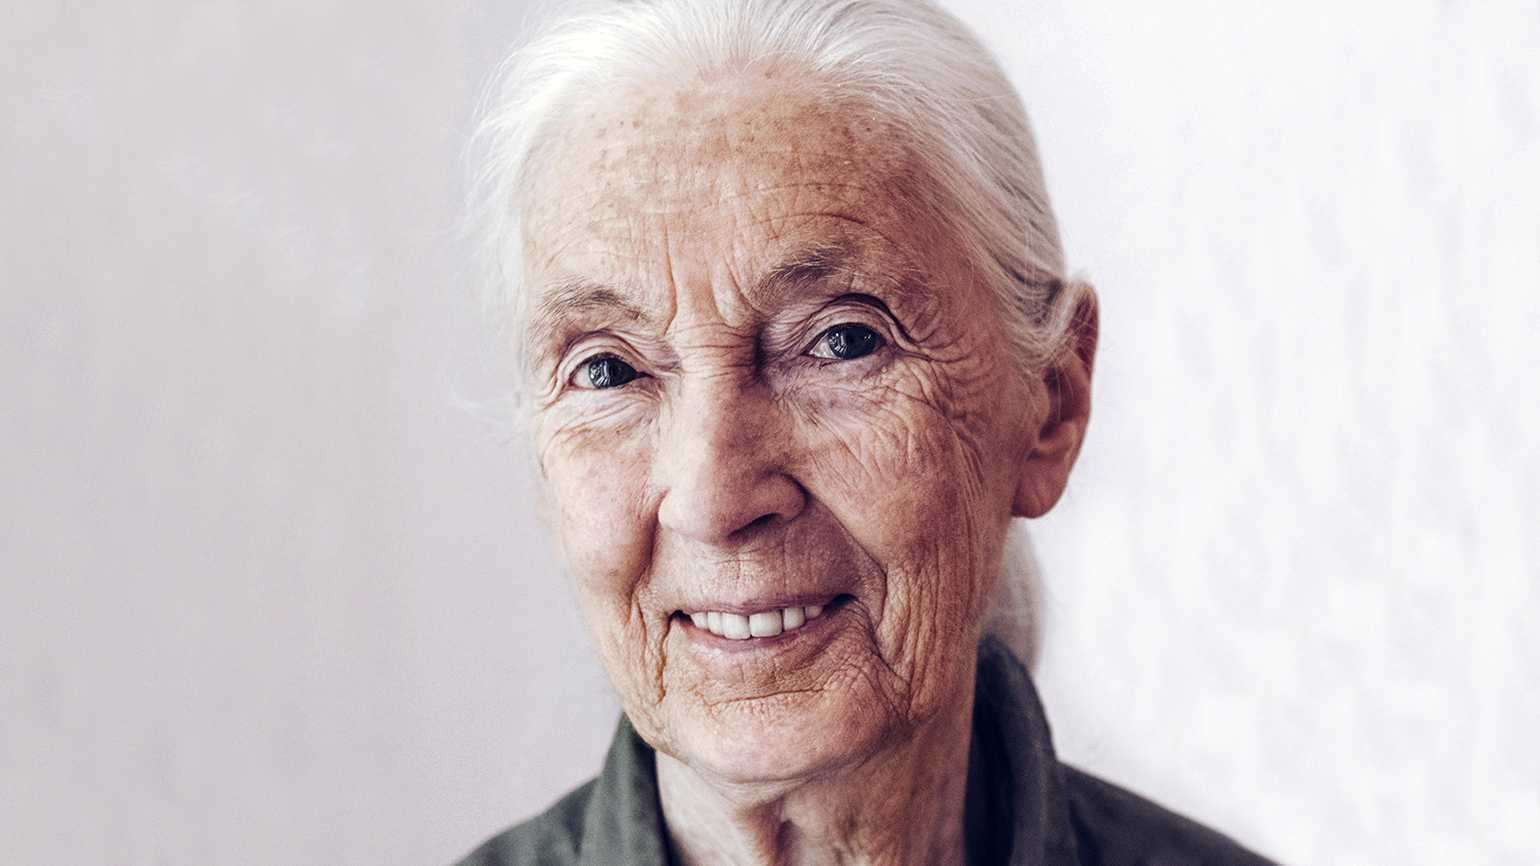 Jane Goodall: I Carry Hope with Me